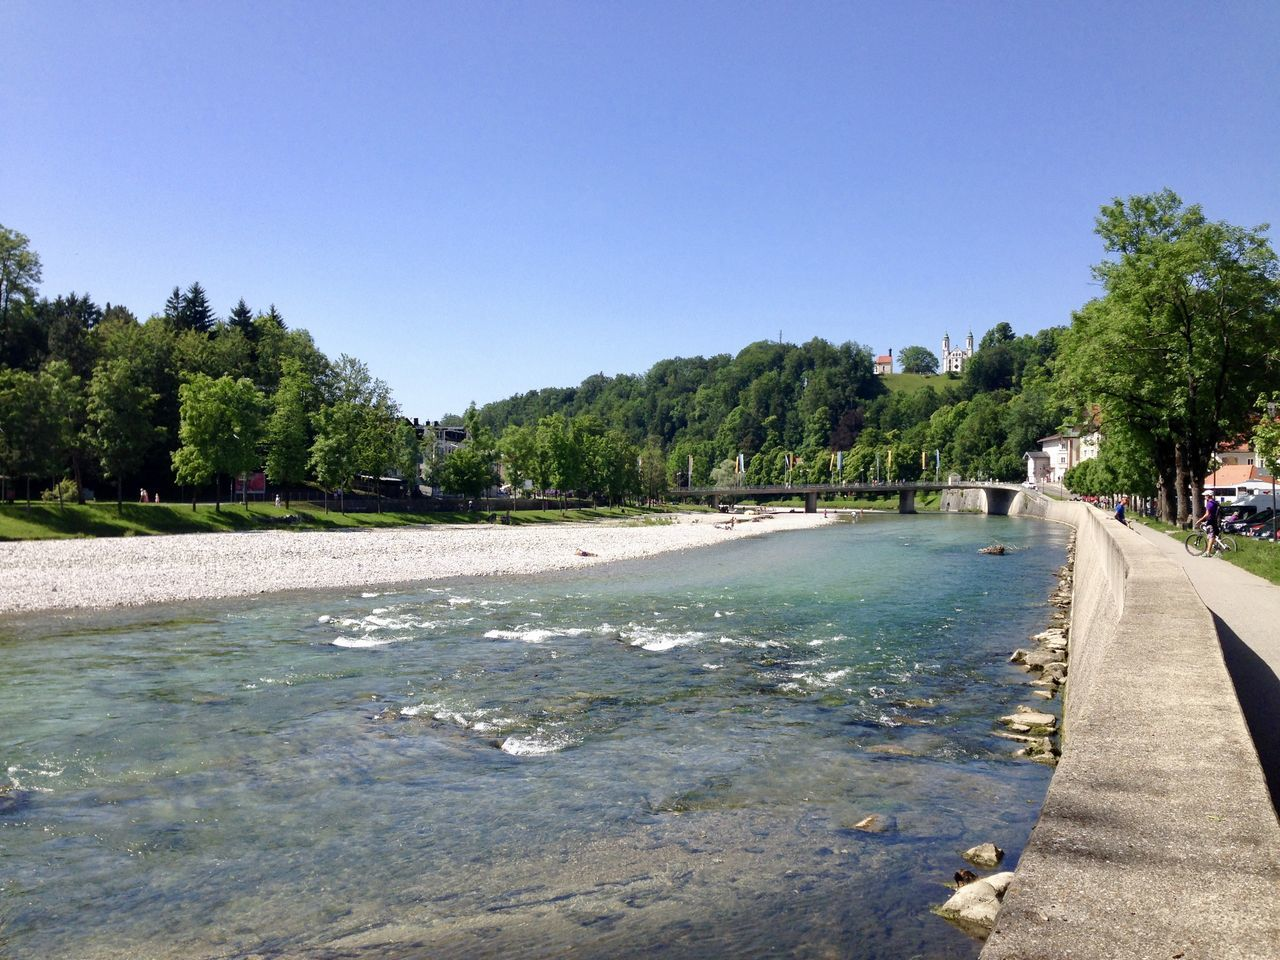 Bad Tölz Bavaria Bayern Beach Beauty In Nature Clear Sky Day Growth Horizontal Isar Isar River Nature No People Outdoors Palm Tree Scenics Sky Tranquil Scene Tranquility Tree Water